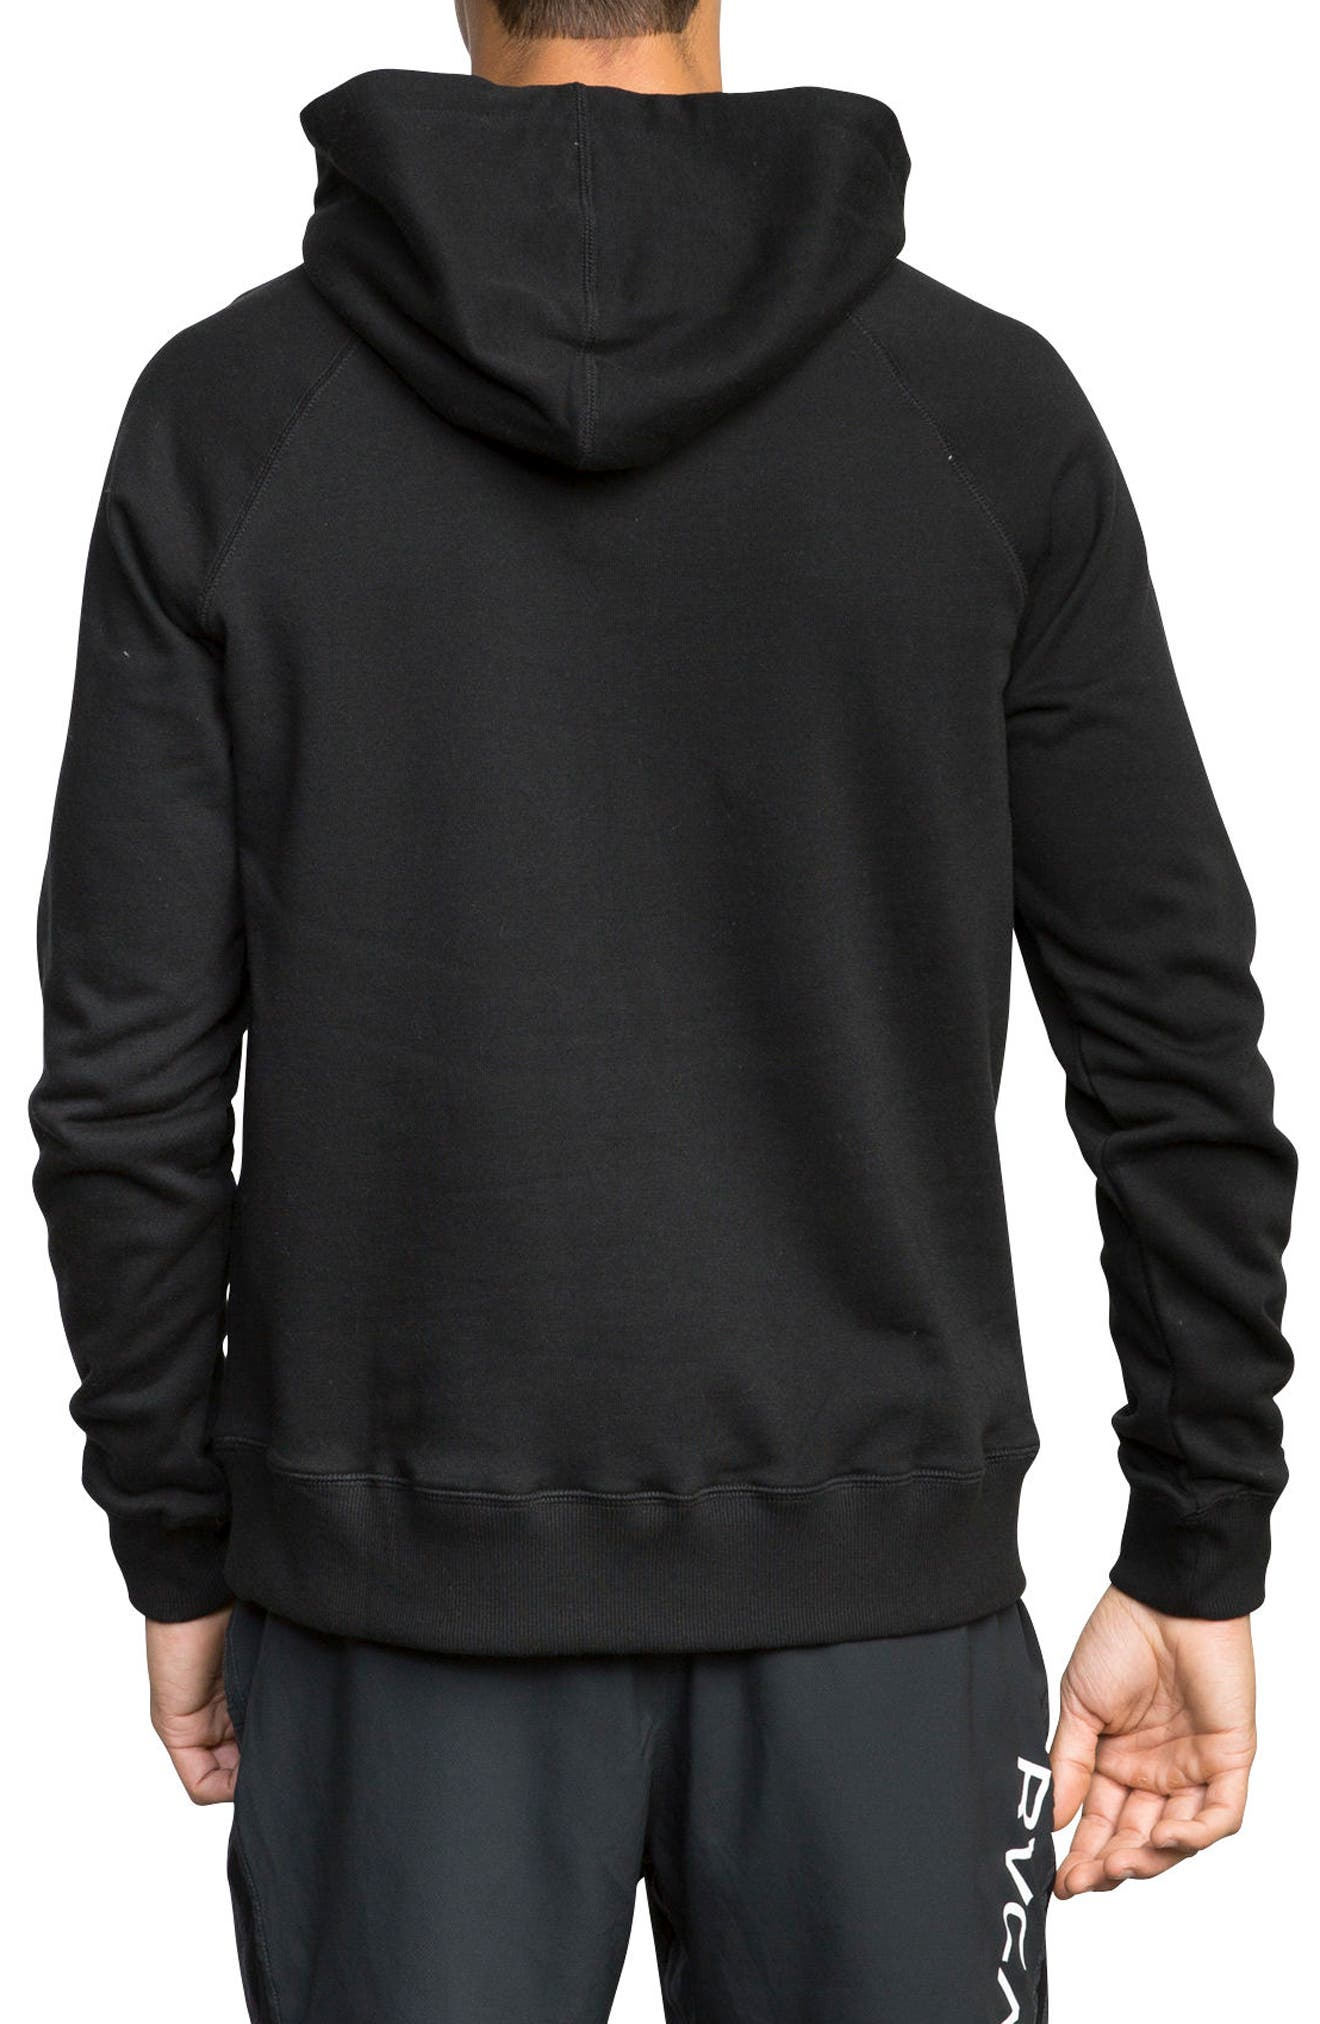 Lock In Graphic Hoodie,                             Alternate thumbnail 2, color,                             001